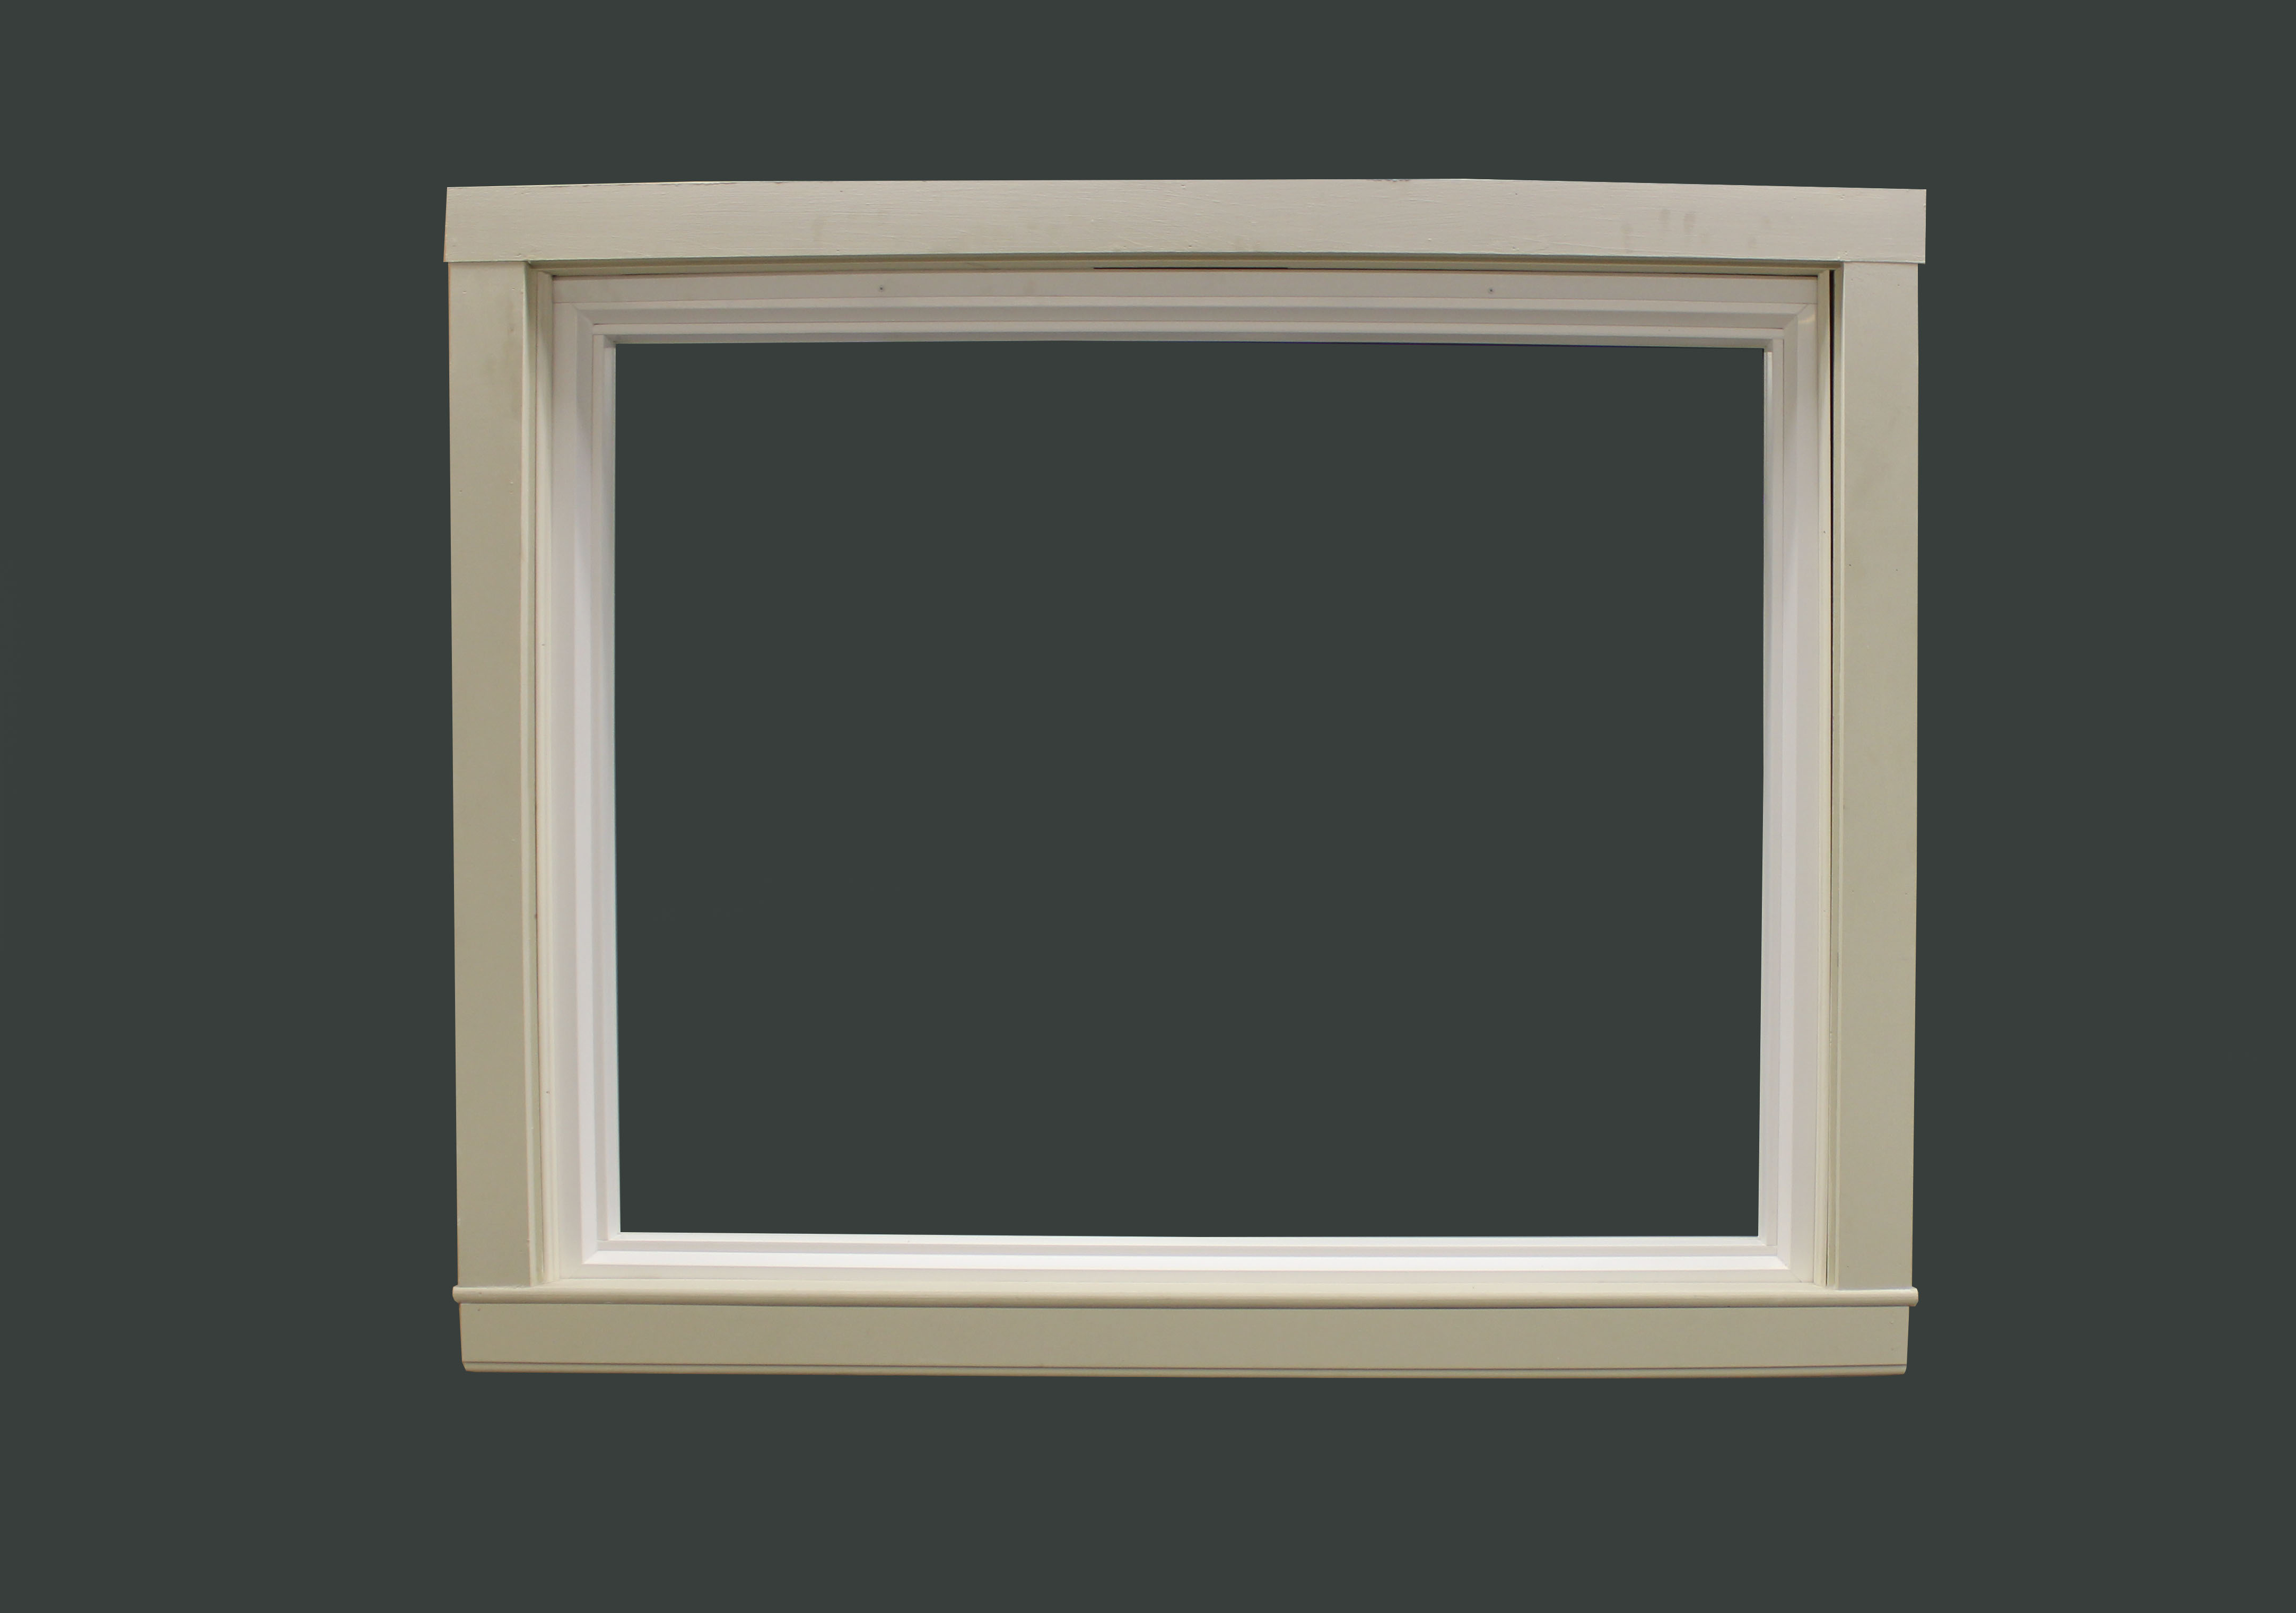 New construction picture windows specialty wholesale supply for Buy new construction windows online